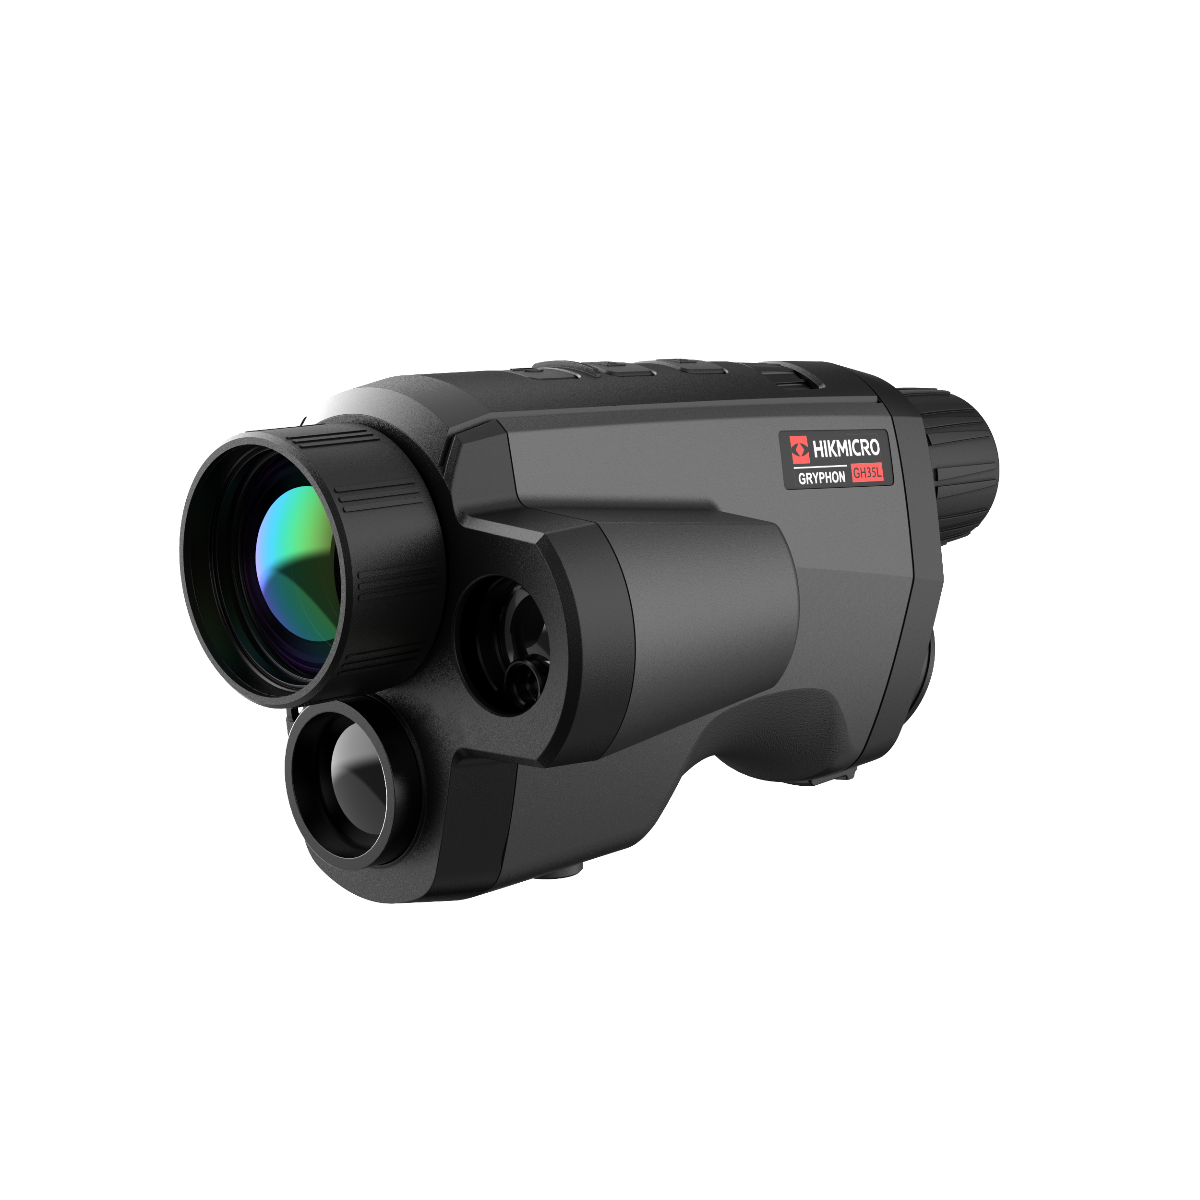 HIKMICRO Gryphon 35mm Pro Fusion Thermal & Optical Monocular With LRF